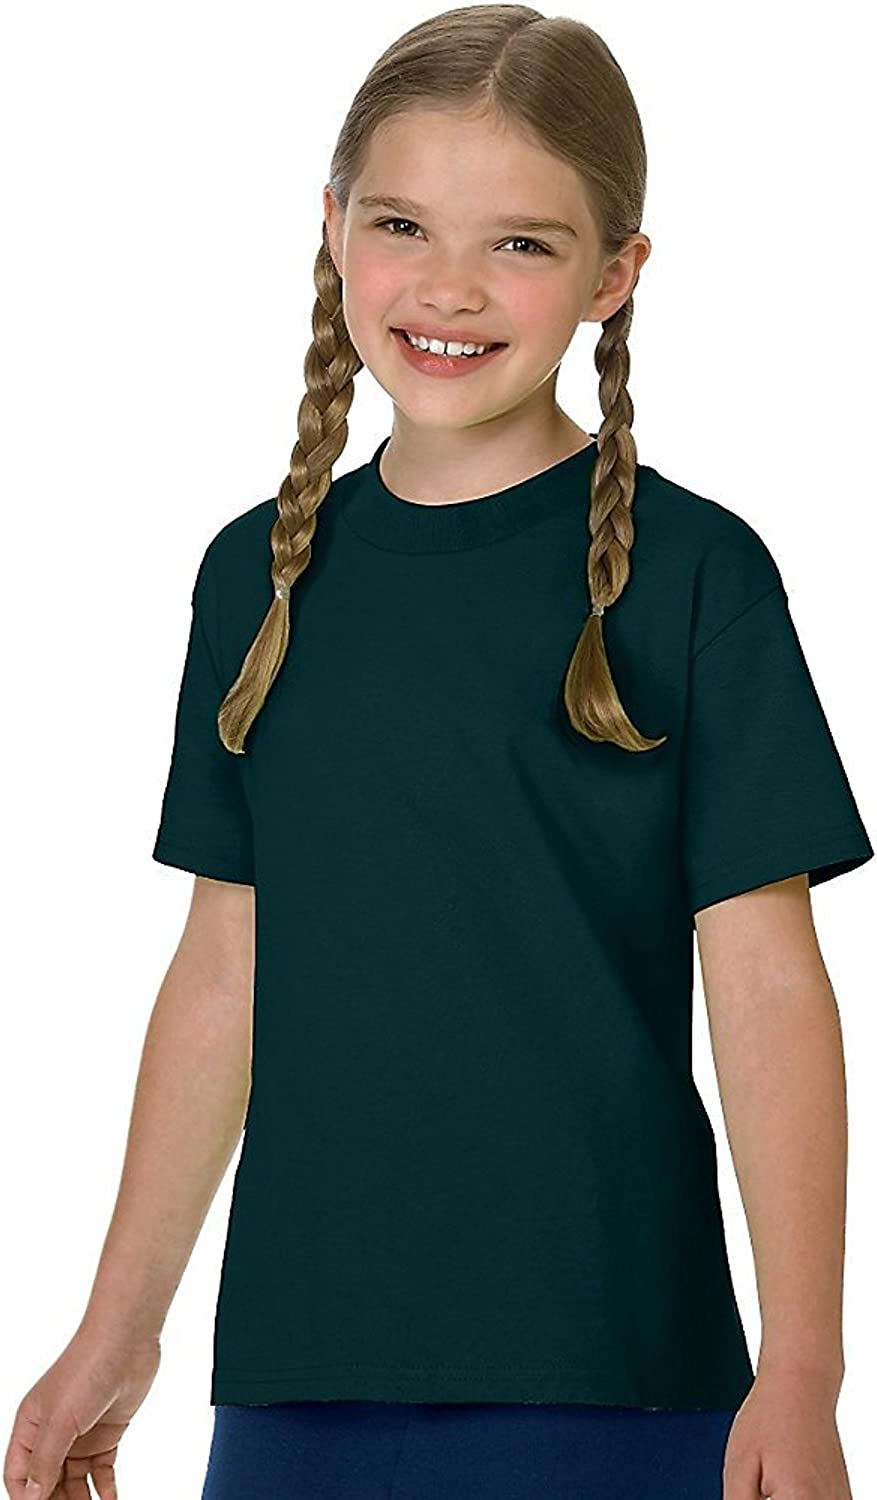 Hanes Authentic TAGLESS Boys' Cotton T-Shirt_Deep Forest_M